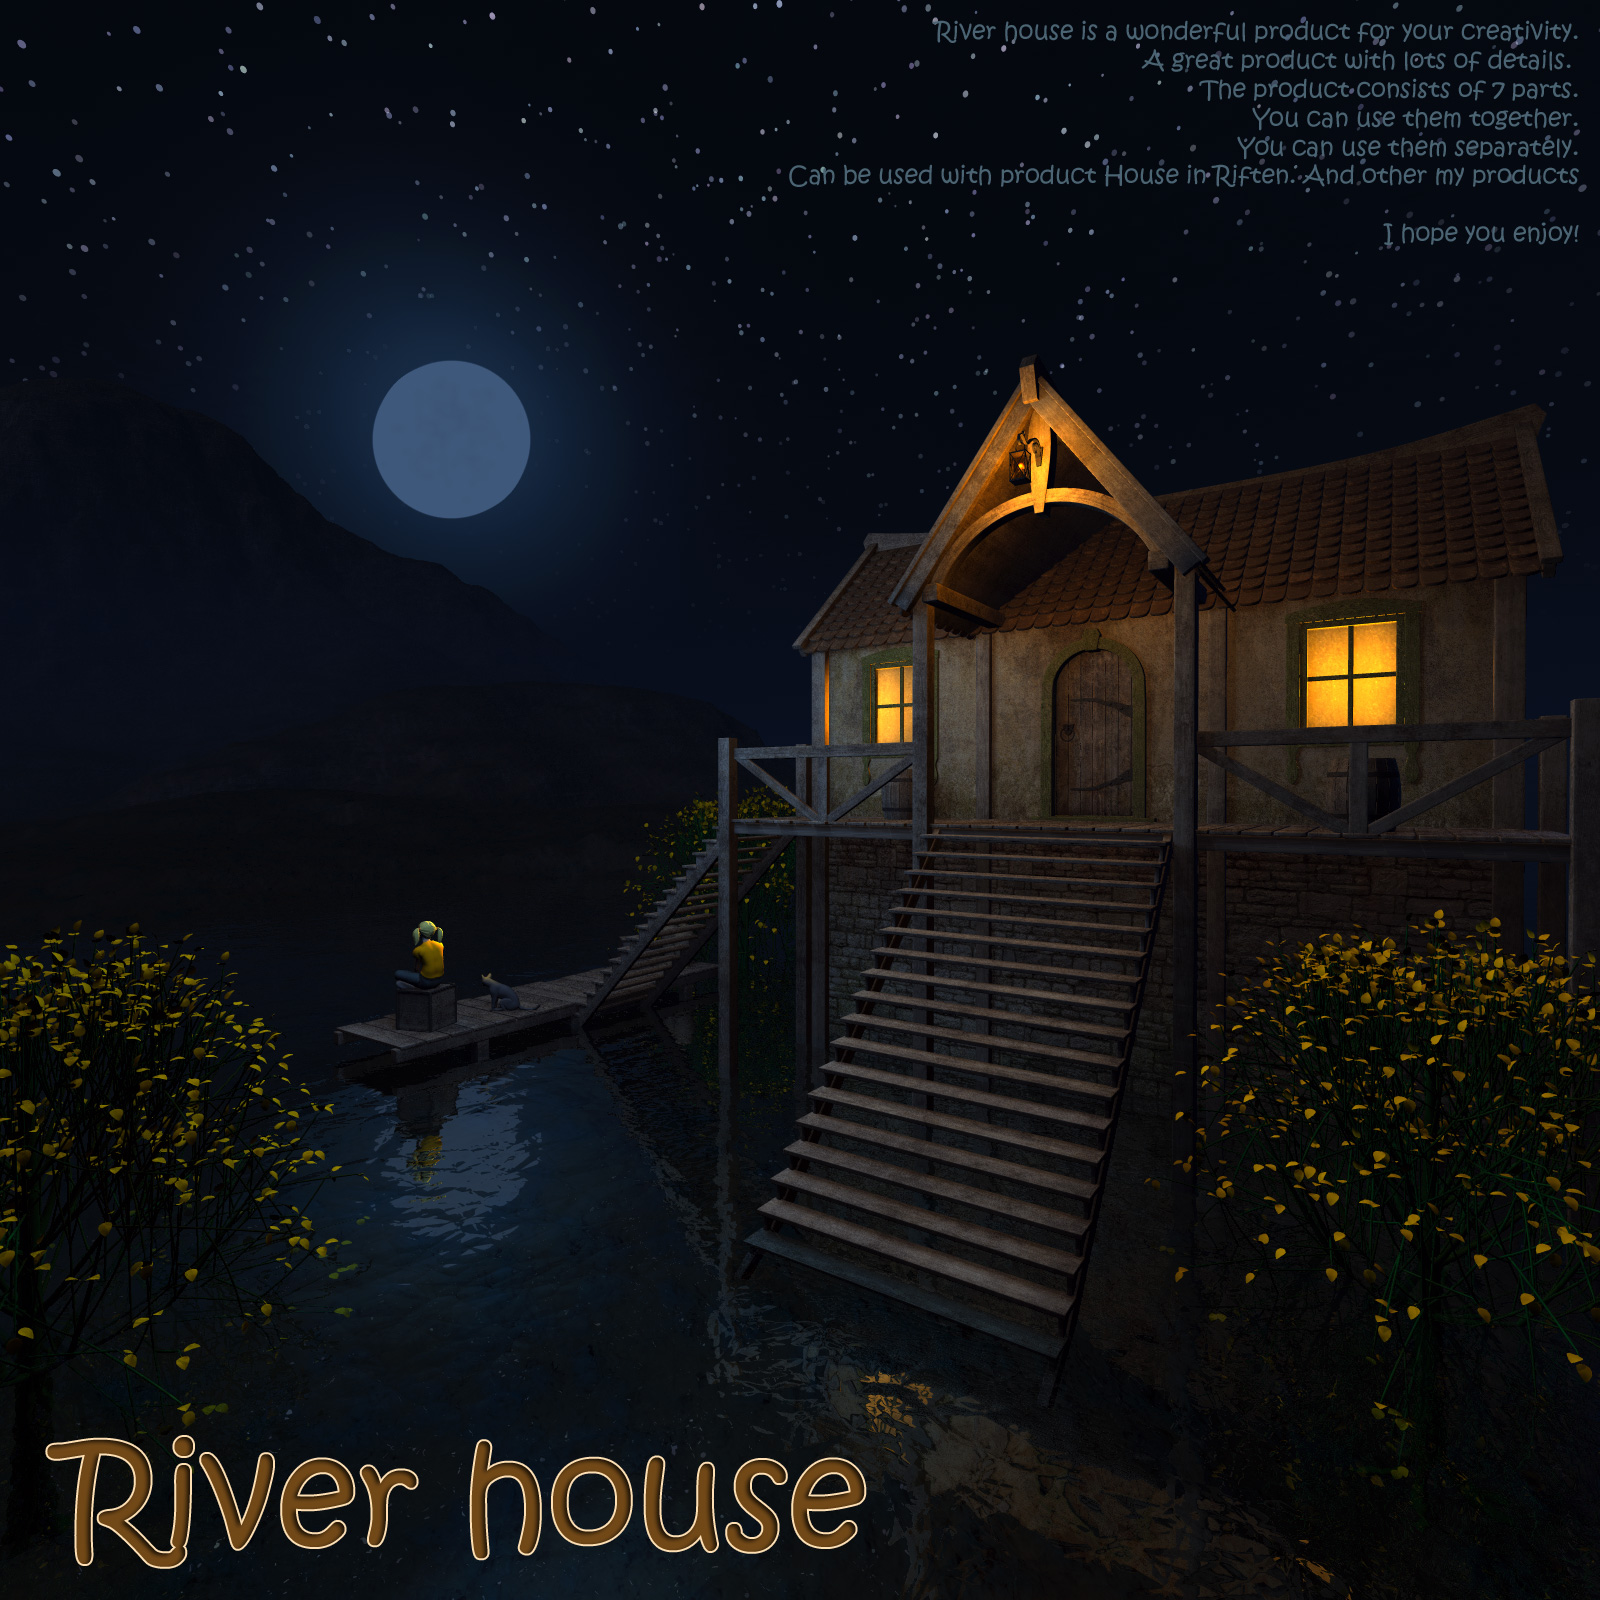 River house by 1971s